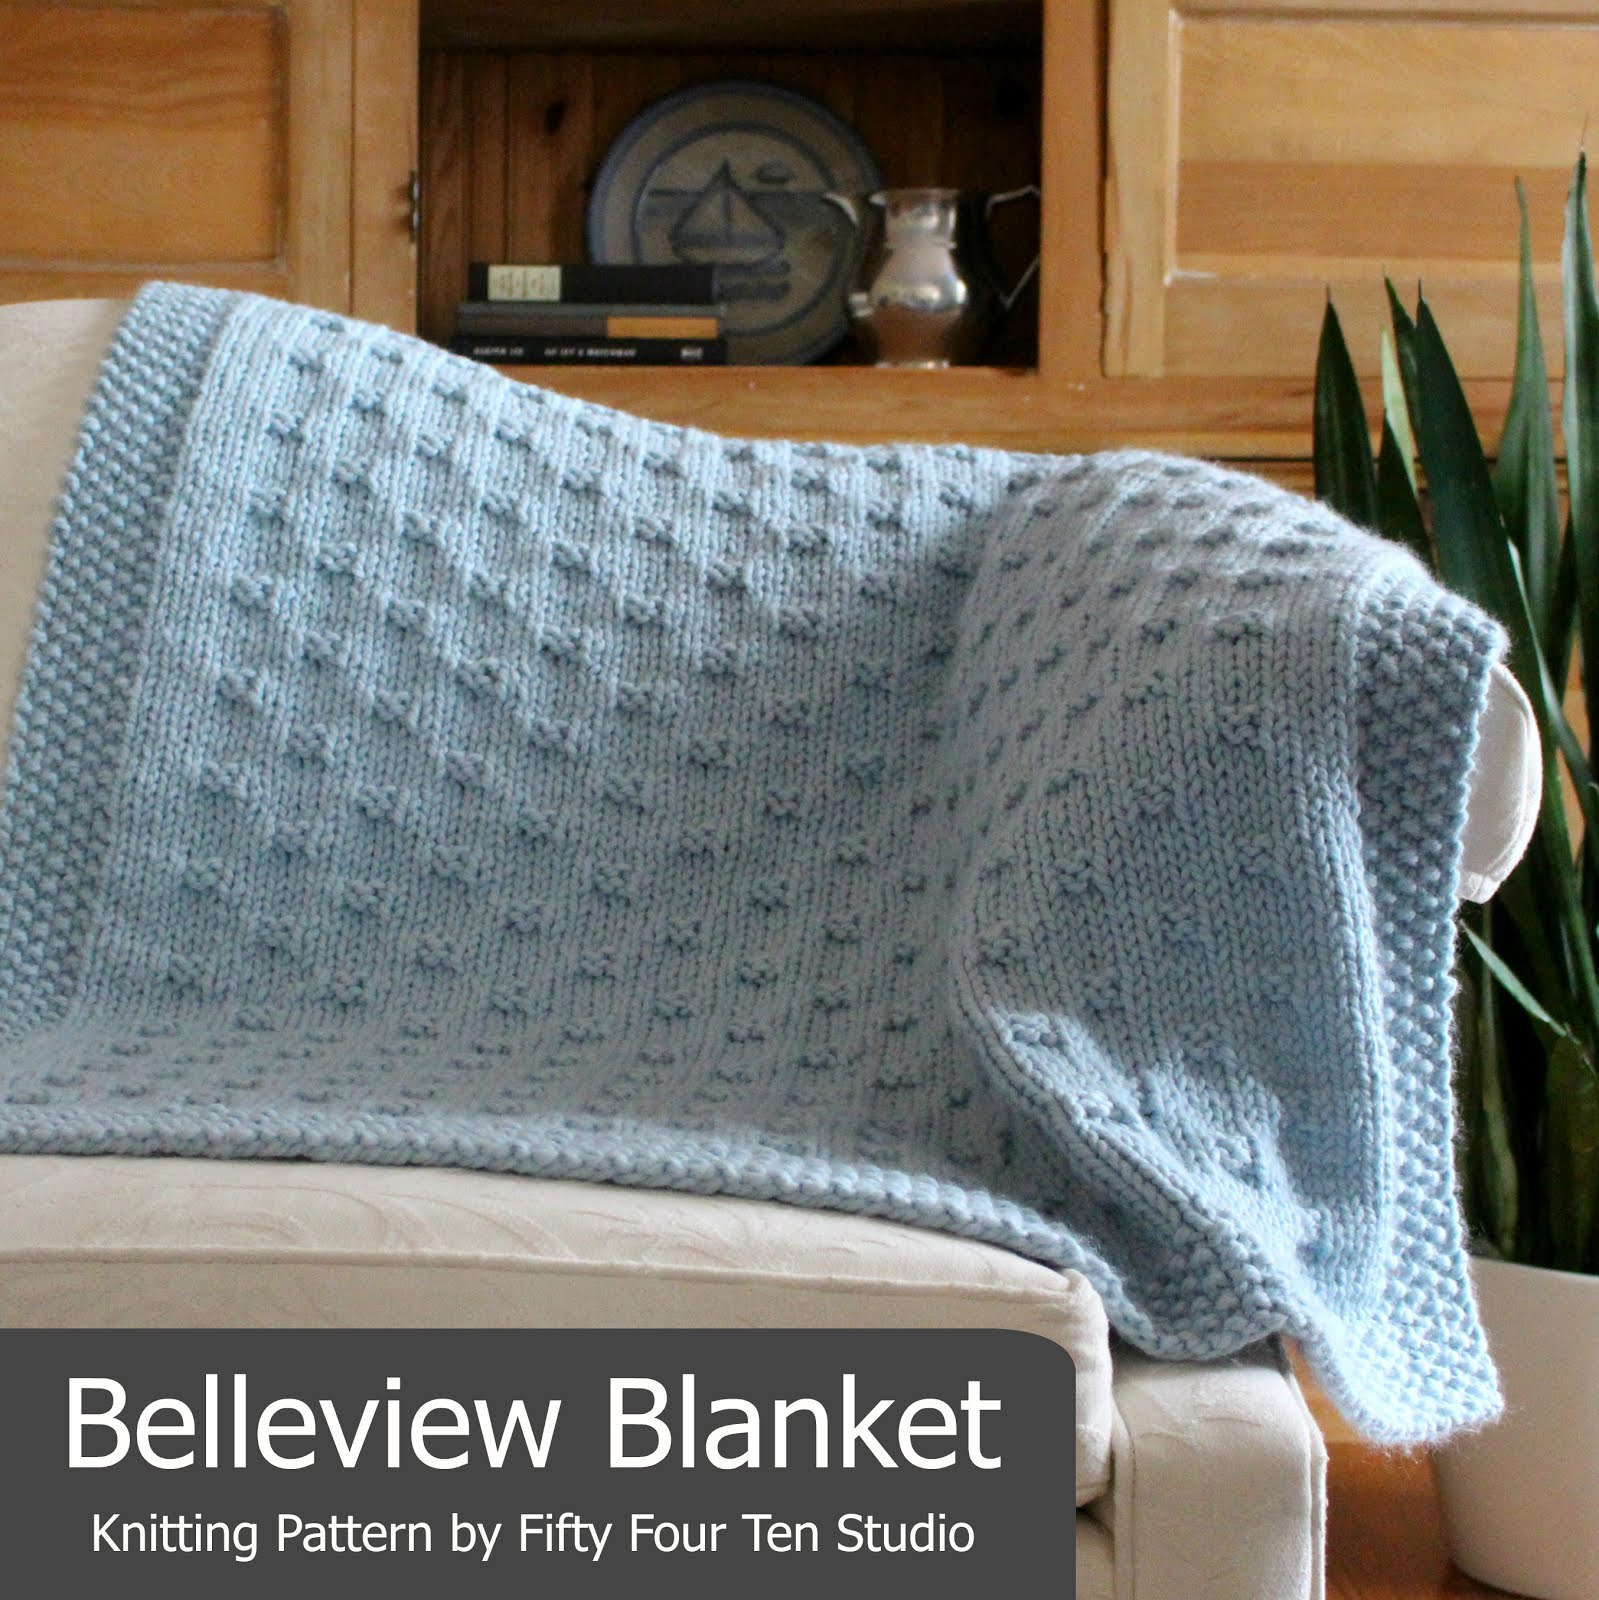 Belleview Blanket